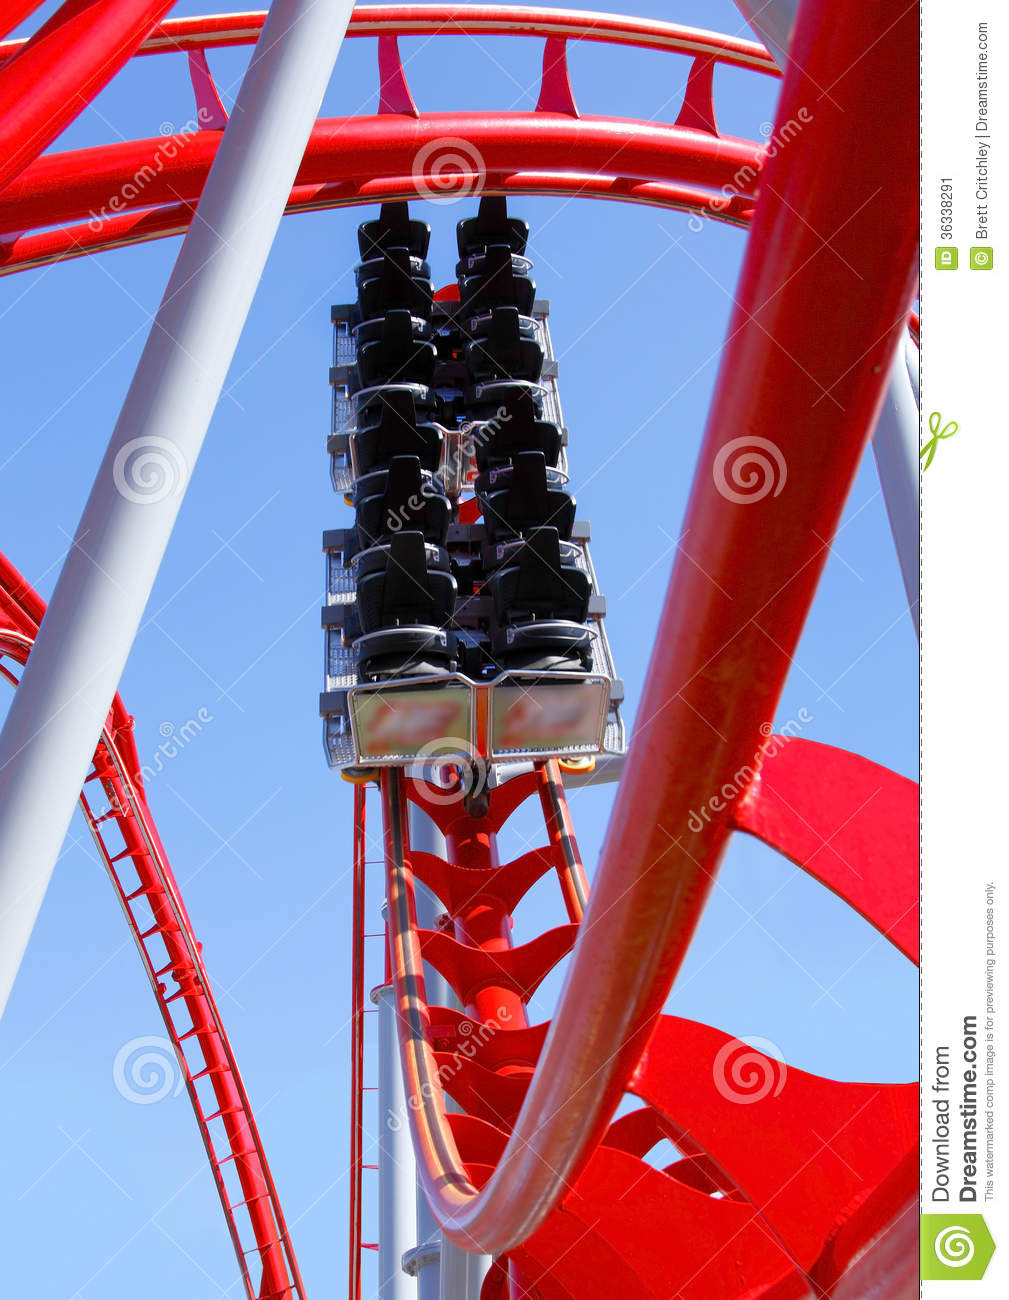 Empty Roller Coaster Stock Image - Image: 36338291